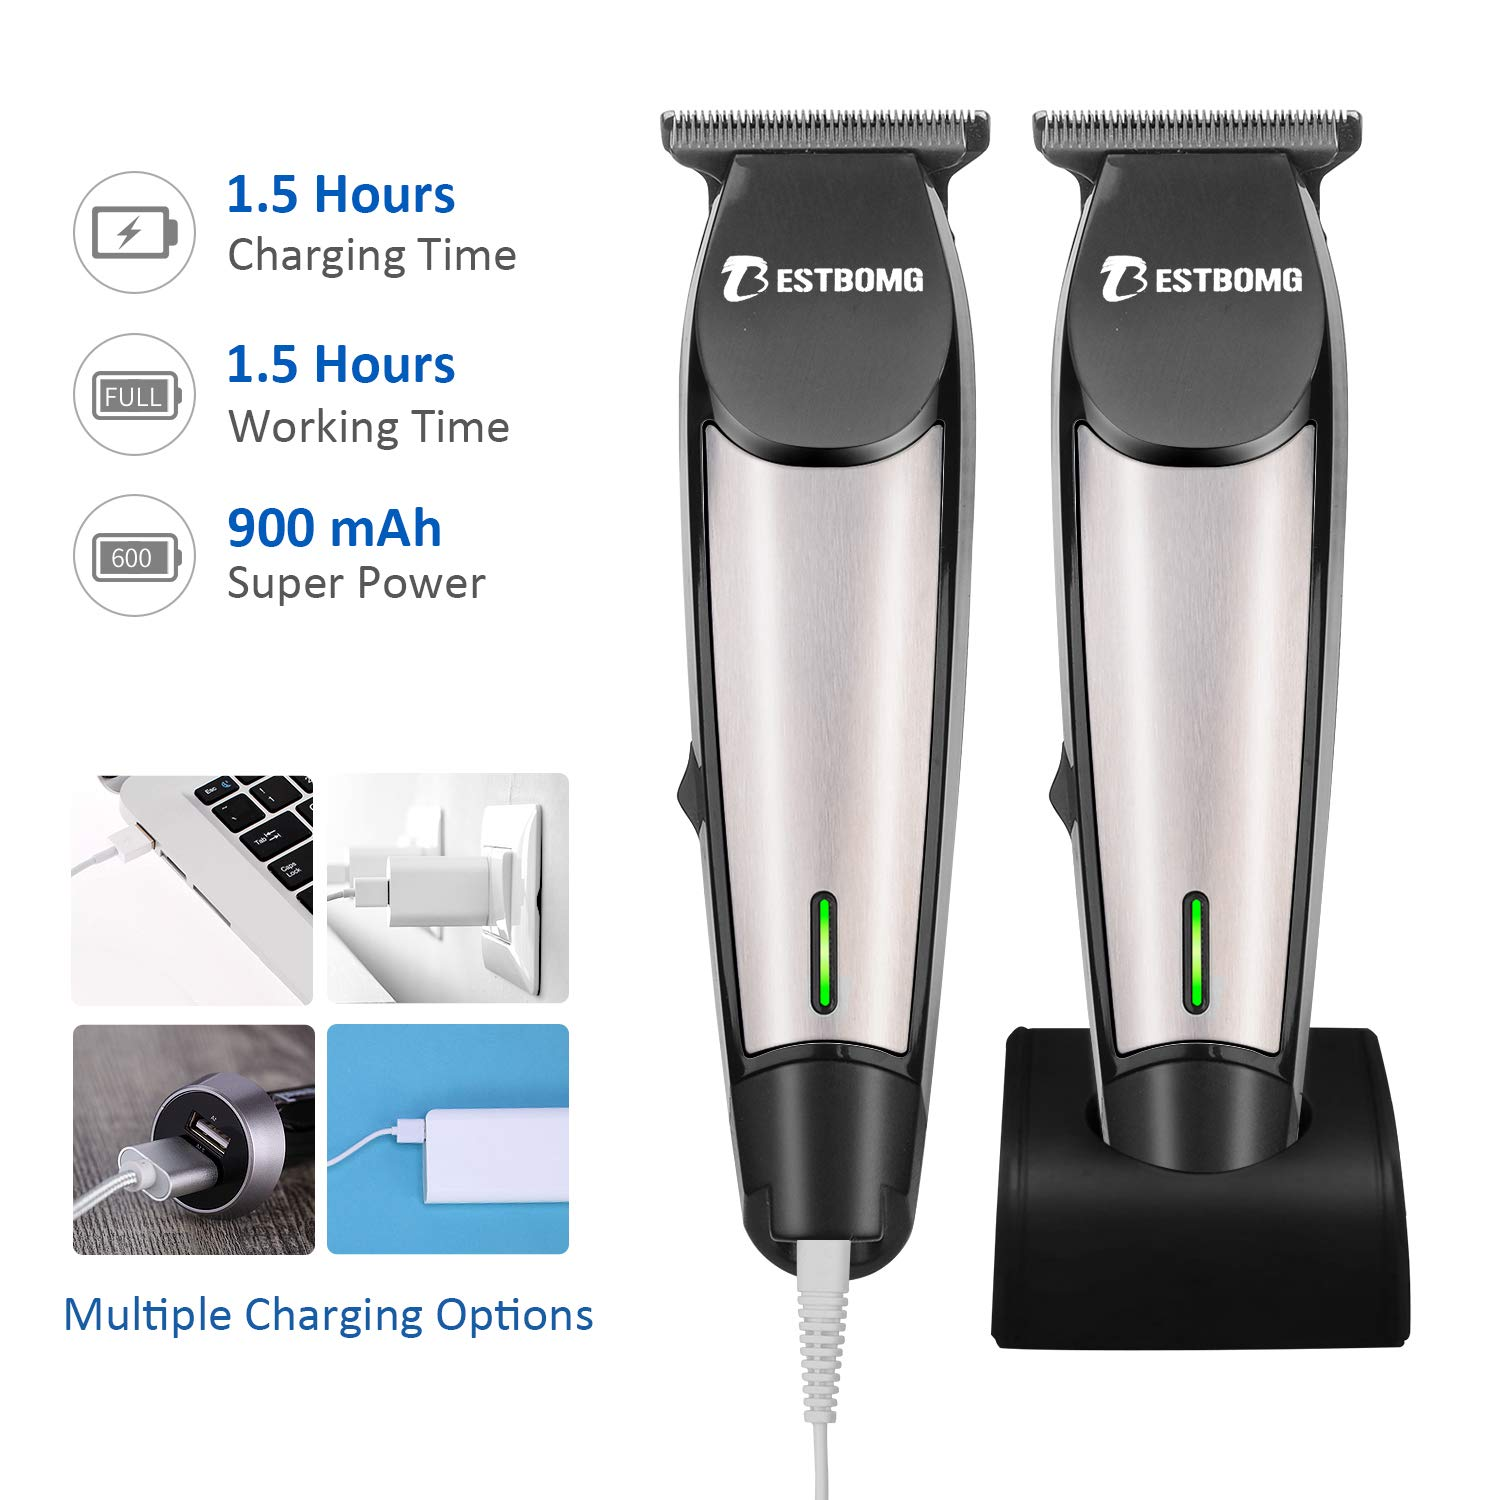 BESTBOMG Pro Outliner Hair Beard Trimmer with T-Blade, Cordless Hair Beard Mustache Body Grooming Kit, USB Rechargeable Home Barber Clippers Set for Contouring Shaving, Sculpting and Trimming